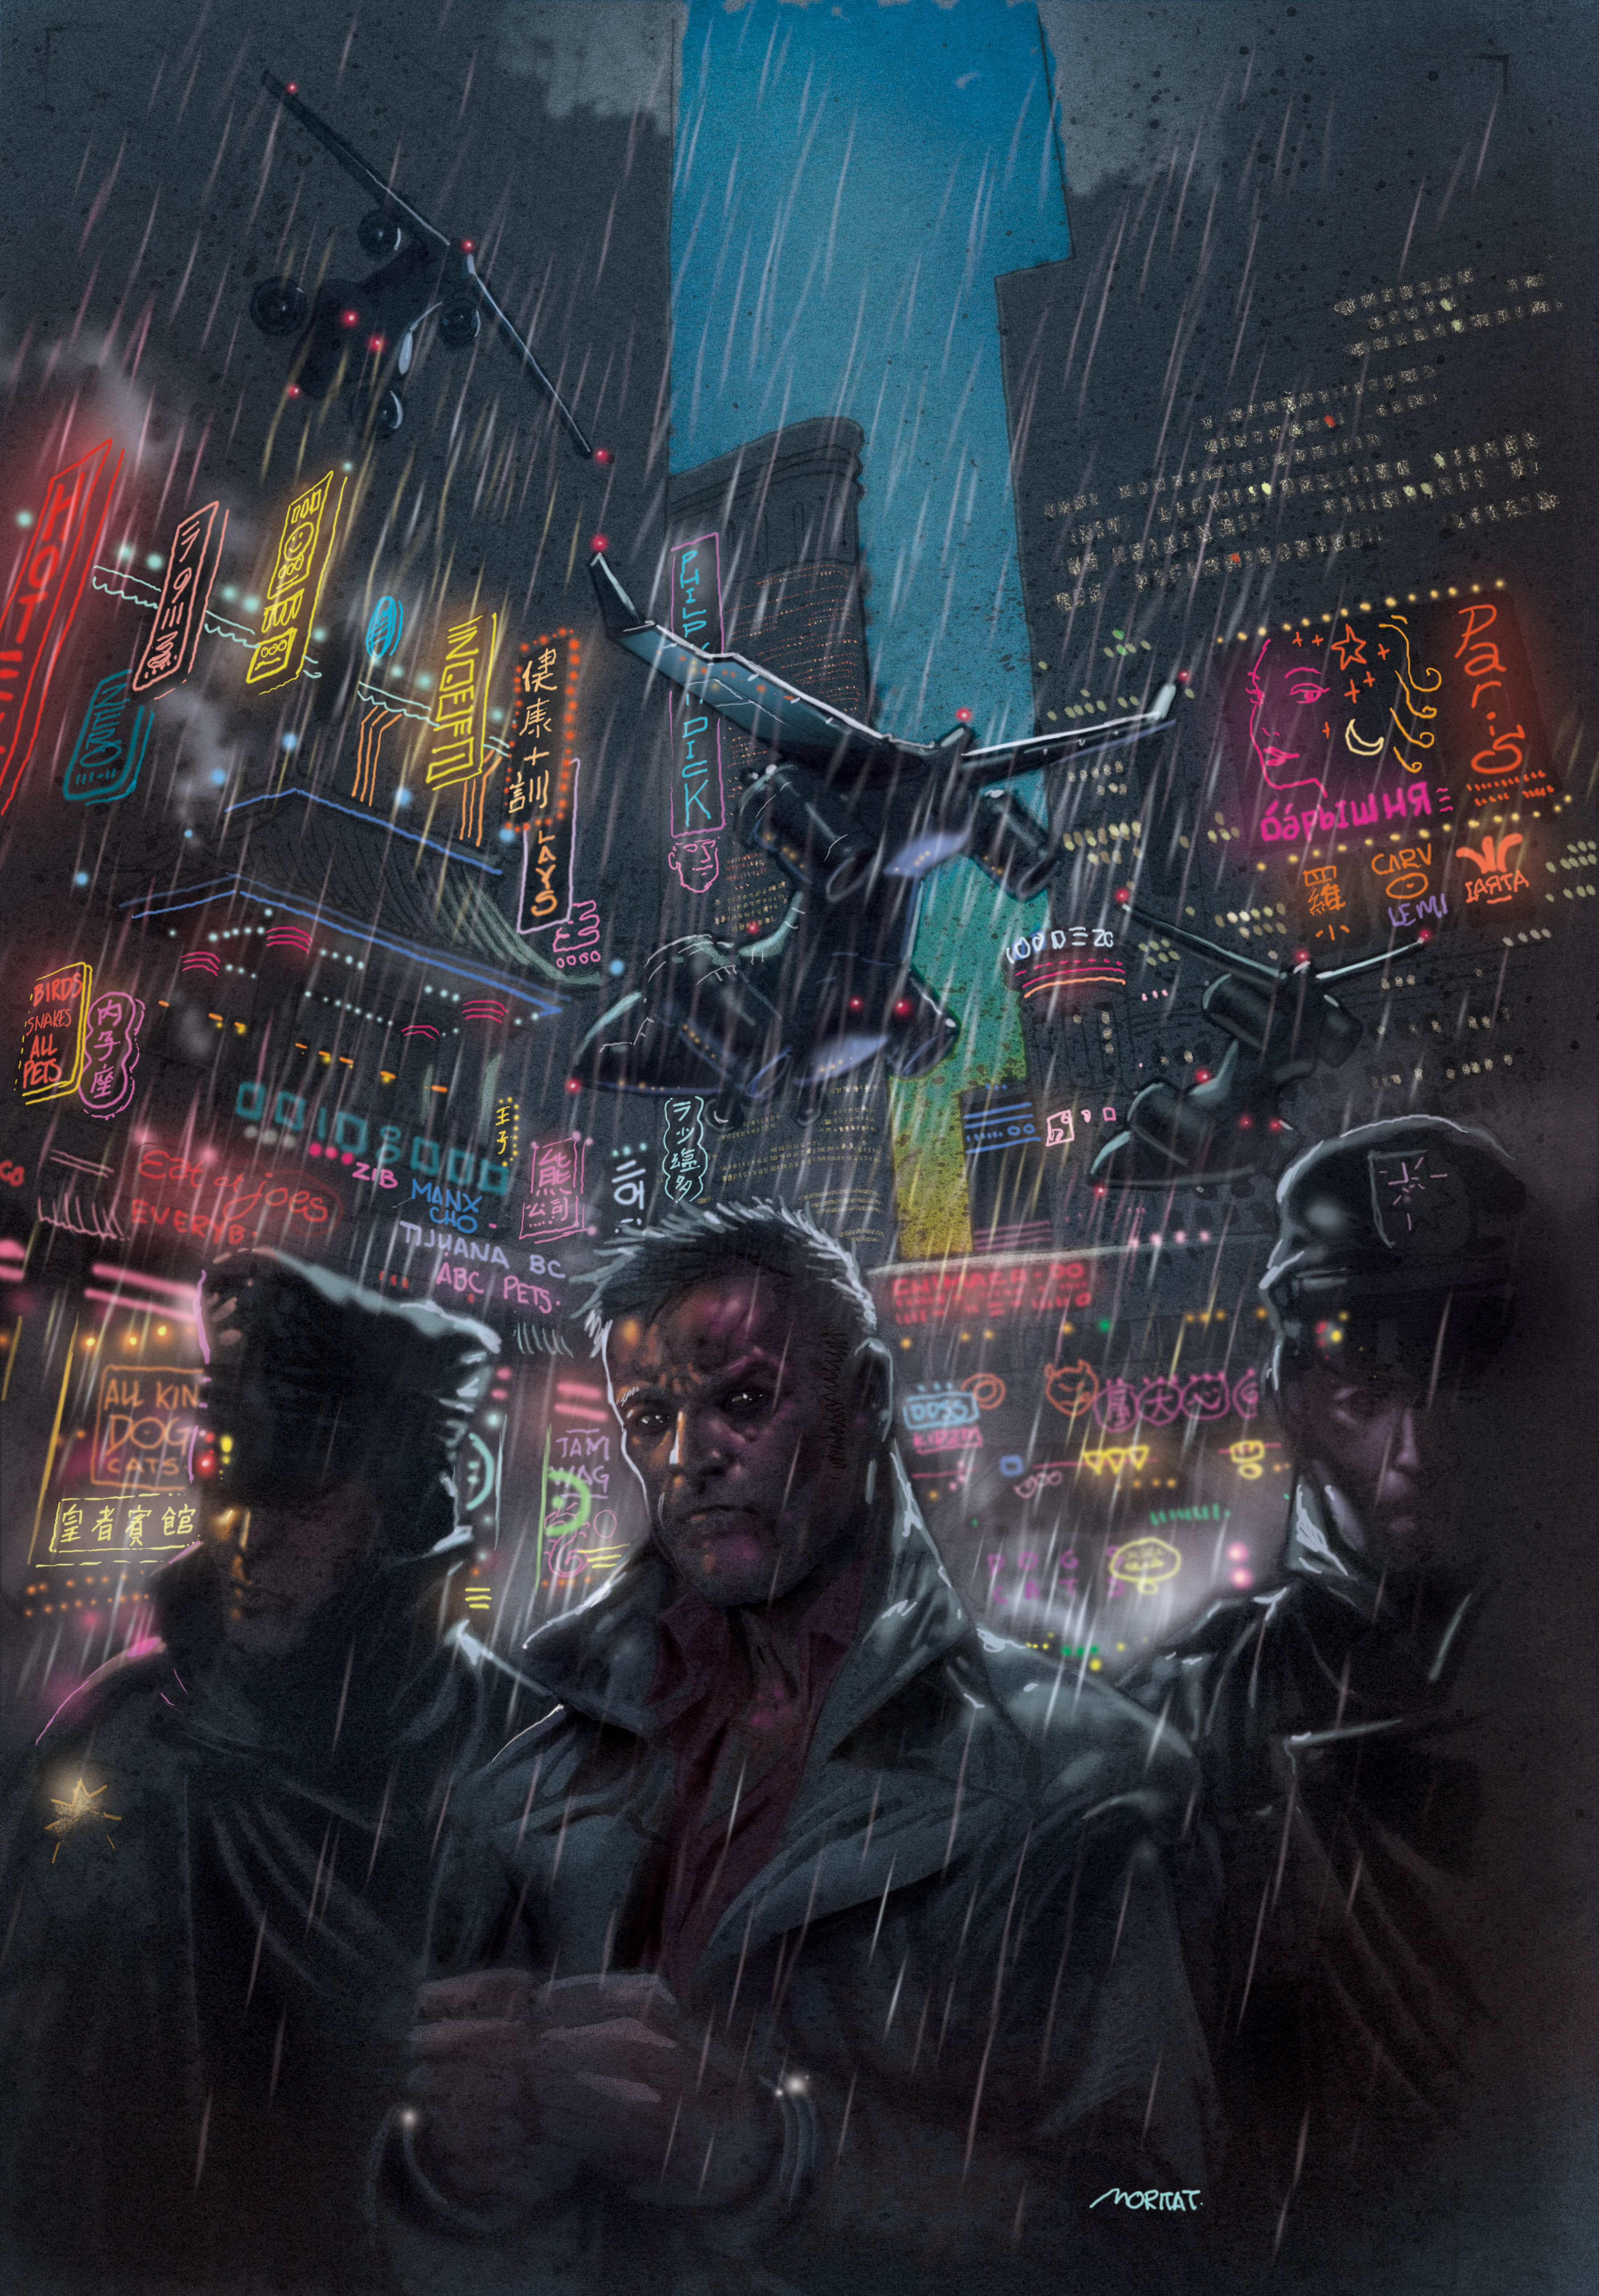 cyberpunk essays Cyberculture, cyberpunk, technopoly and an essay on the meaning of the comic laura mulvey laurence fishburne laurence olivier laurence sterne lautreamont.